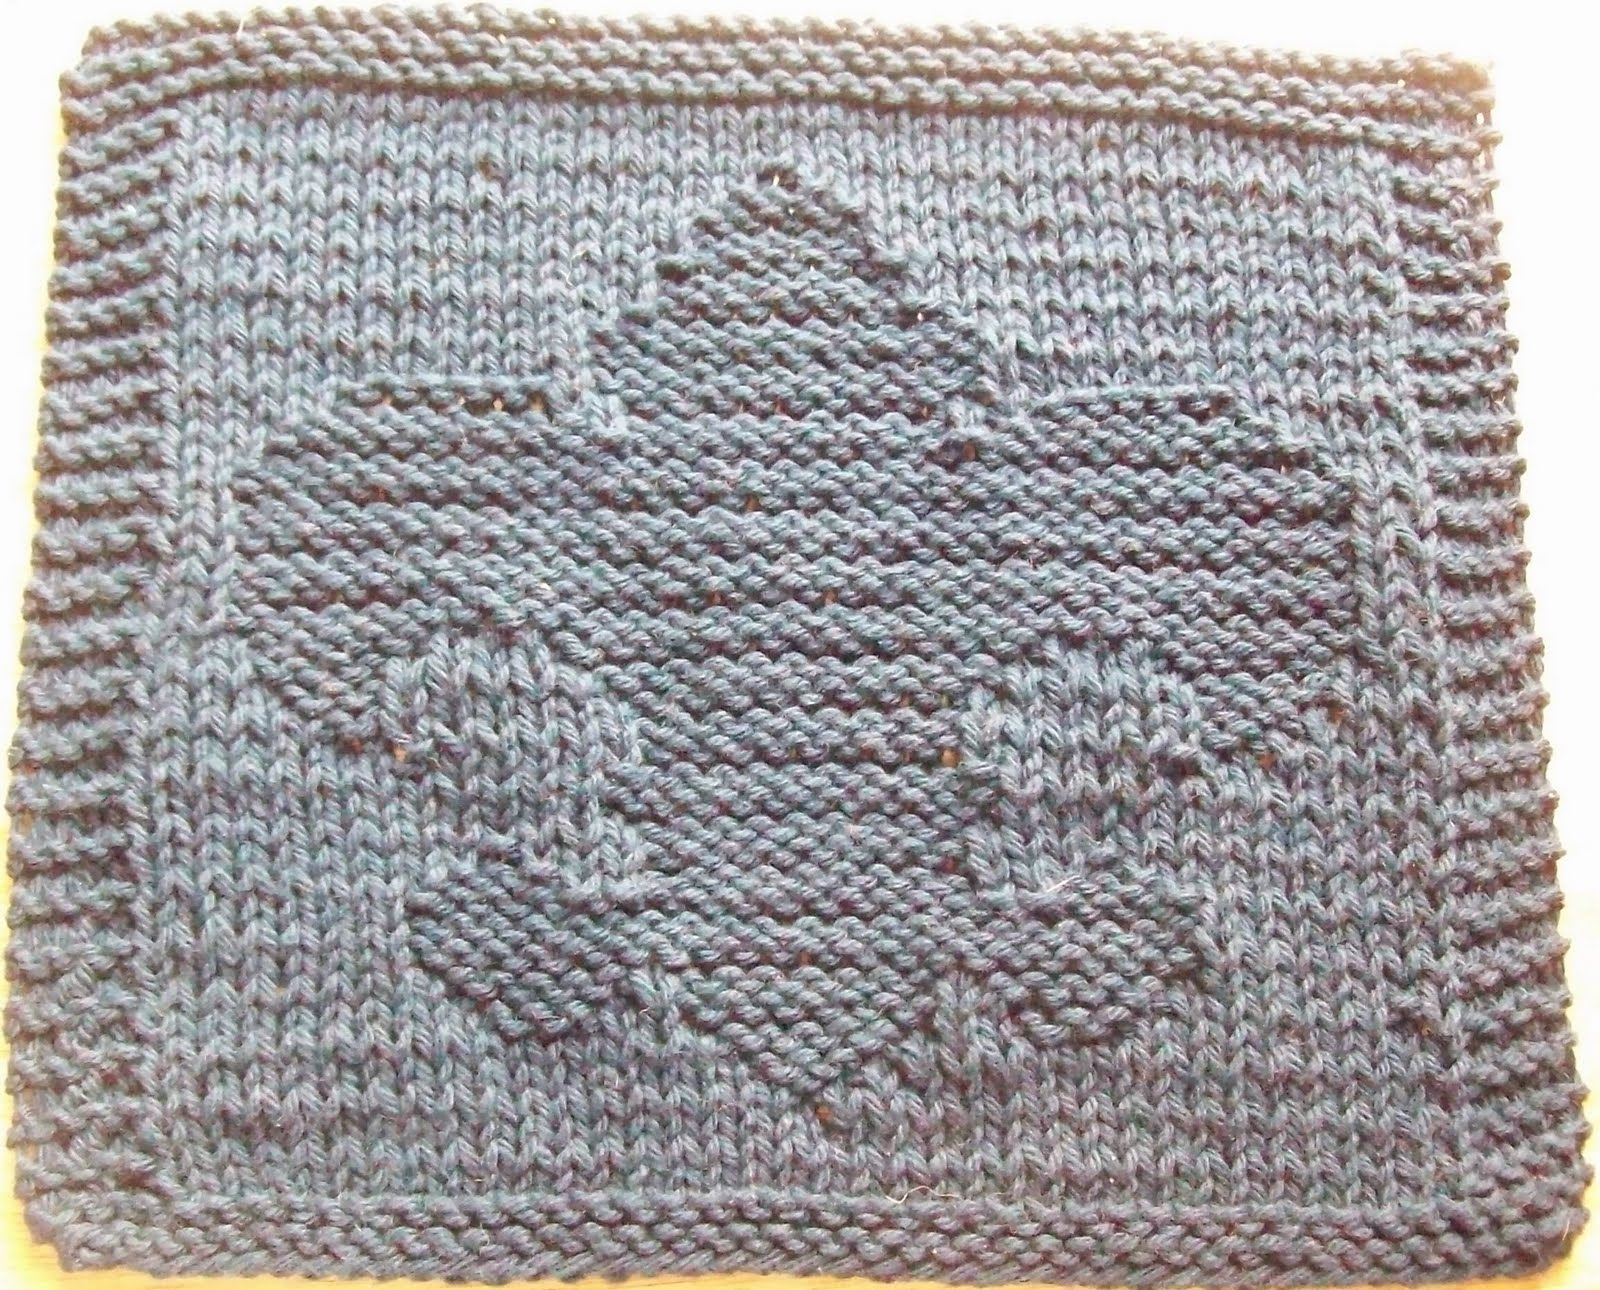 DigKnitty Designs: Another Fleur De Lis Knit Dishcloth Pattern